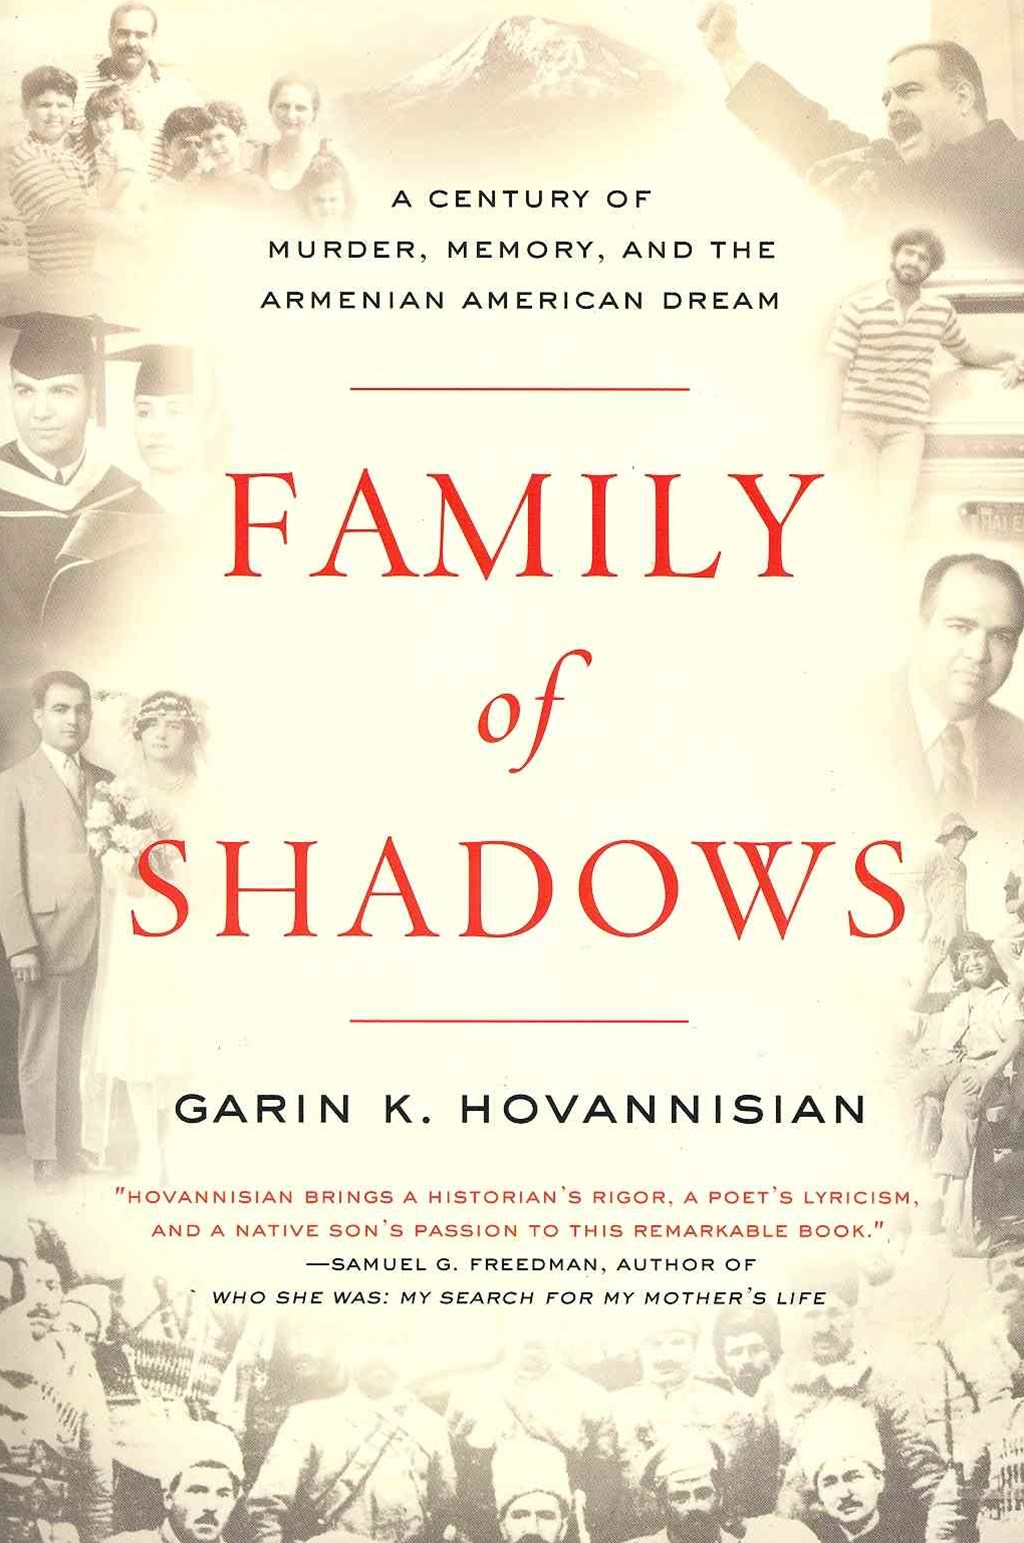 A Family of Shadows: A Century of Murder, Memory, and the Armenian American Dream